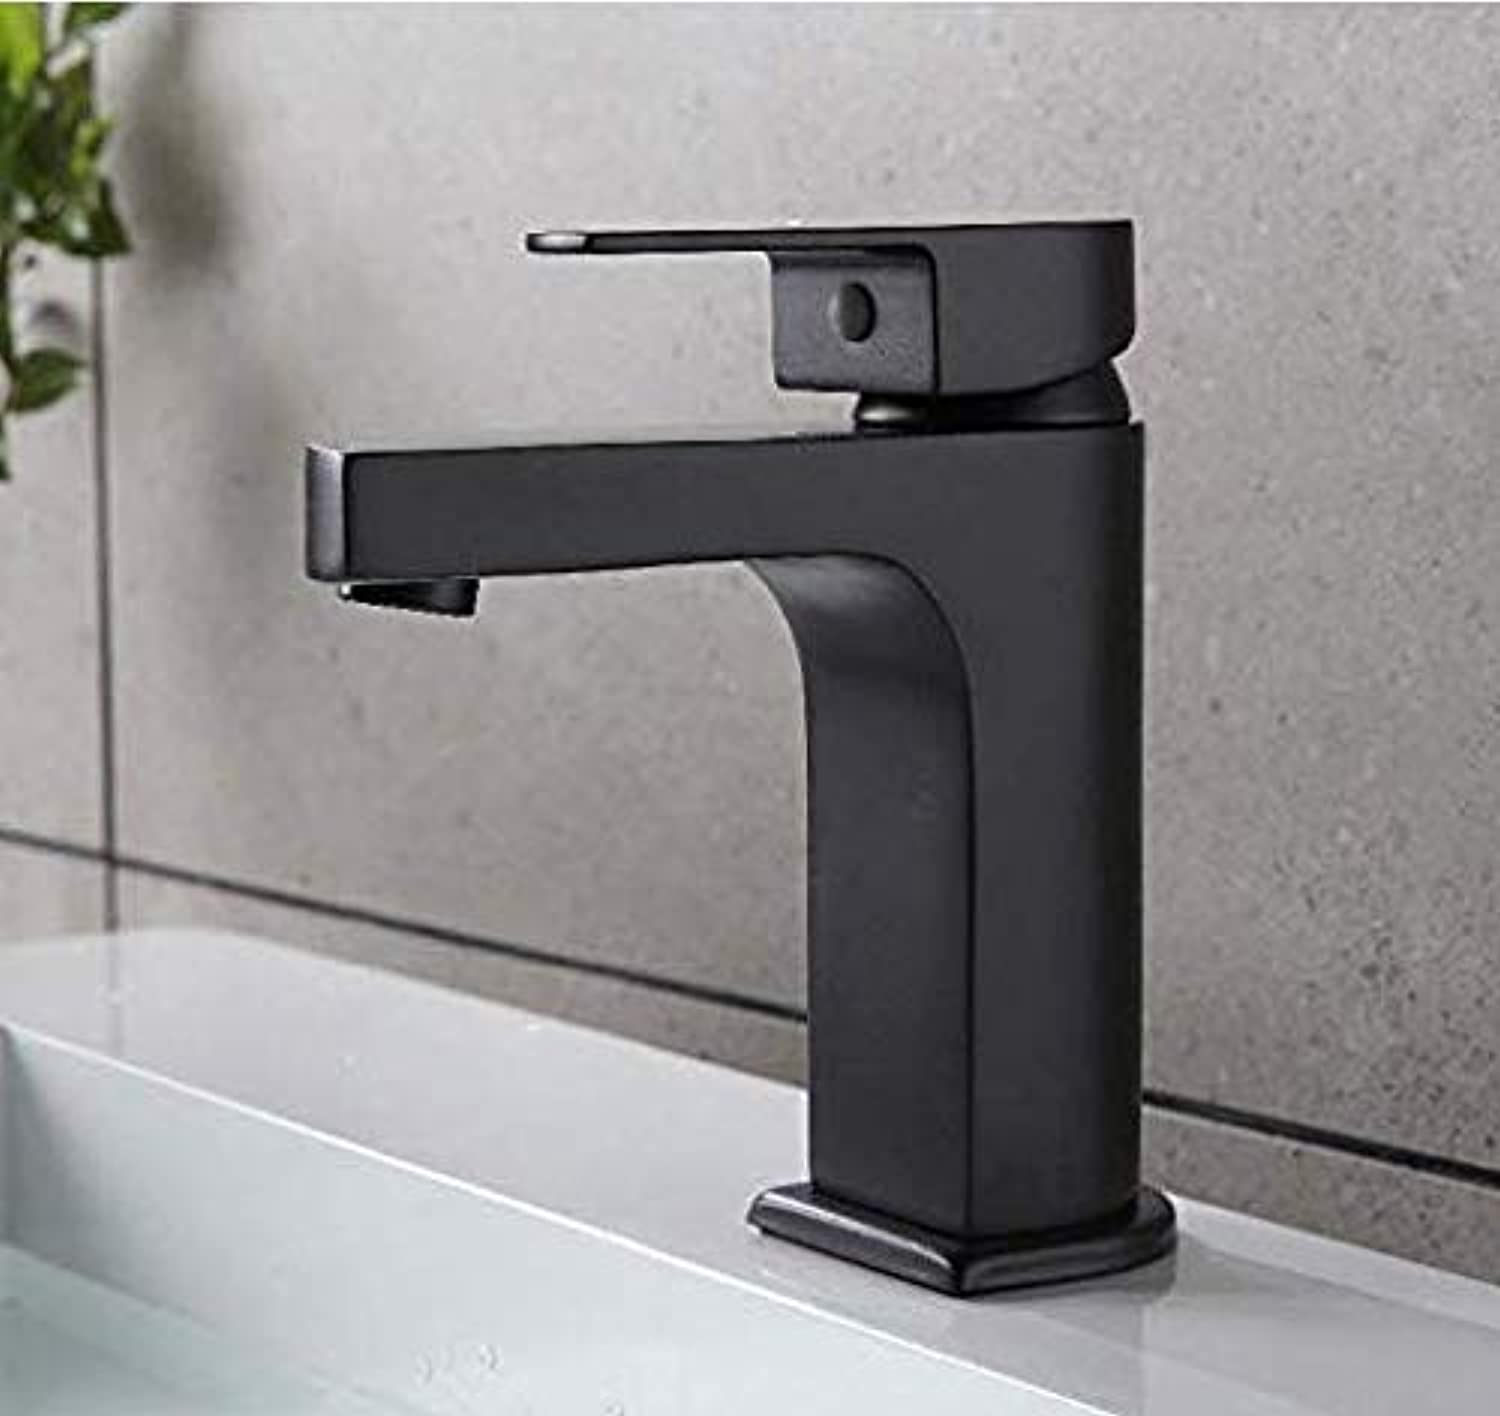 Retro Deluxe Faucetinging Faucet Chrome Black Bathroom Faucet Basin Sink Mixer Tap Brass Cold and Hot Water Basin Faucet